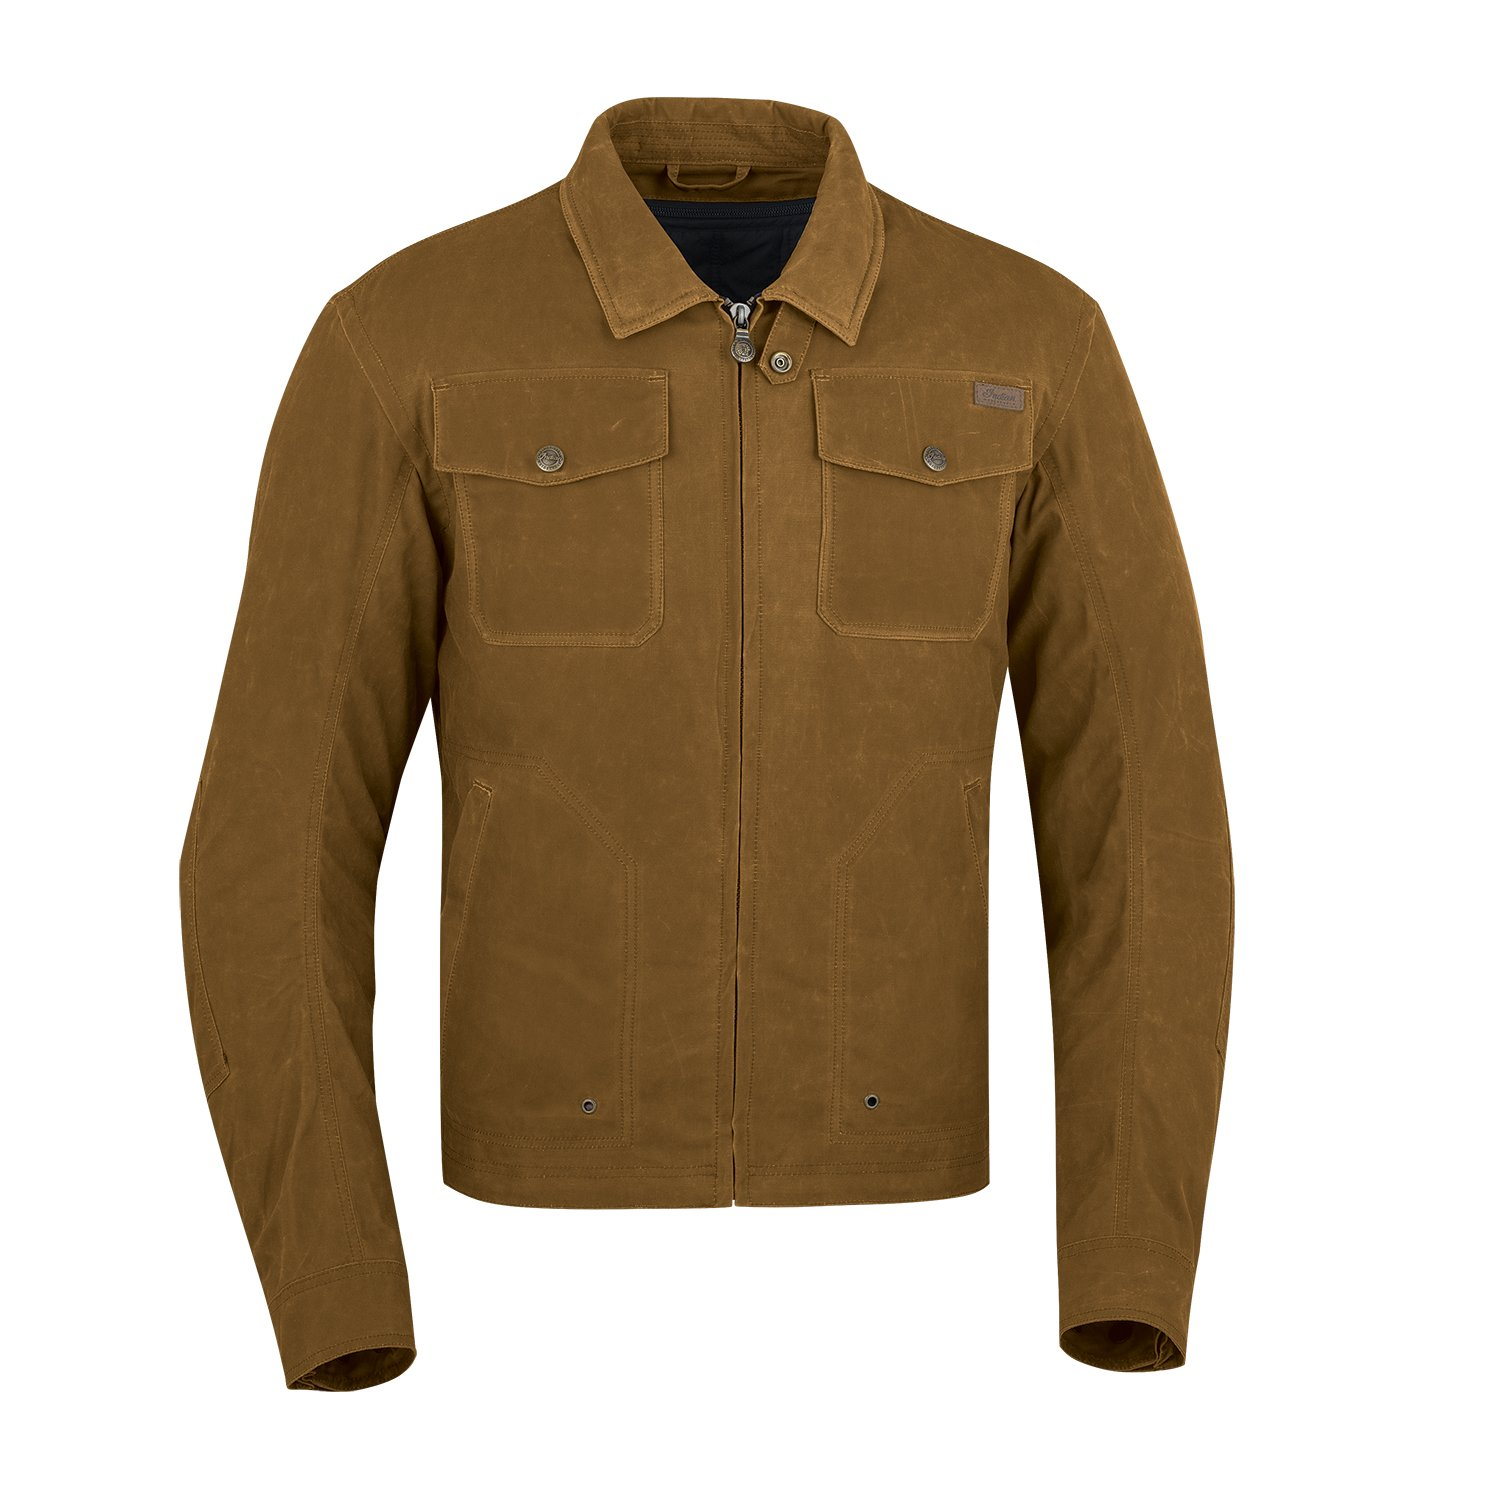 Men's Waxed Cotton Shift Riding Jacket with Removable Lining, Tan